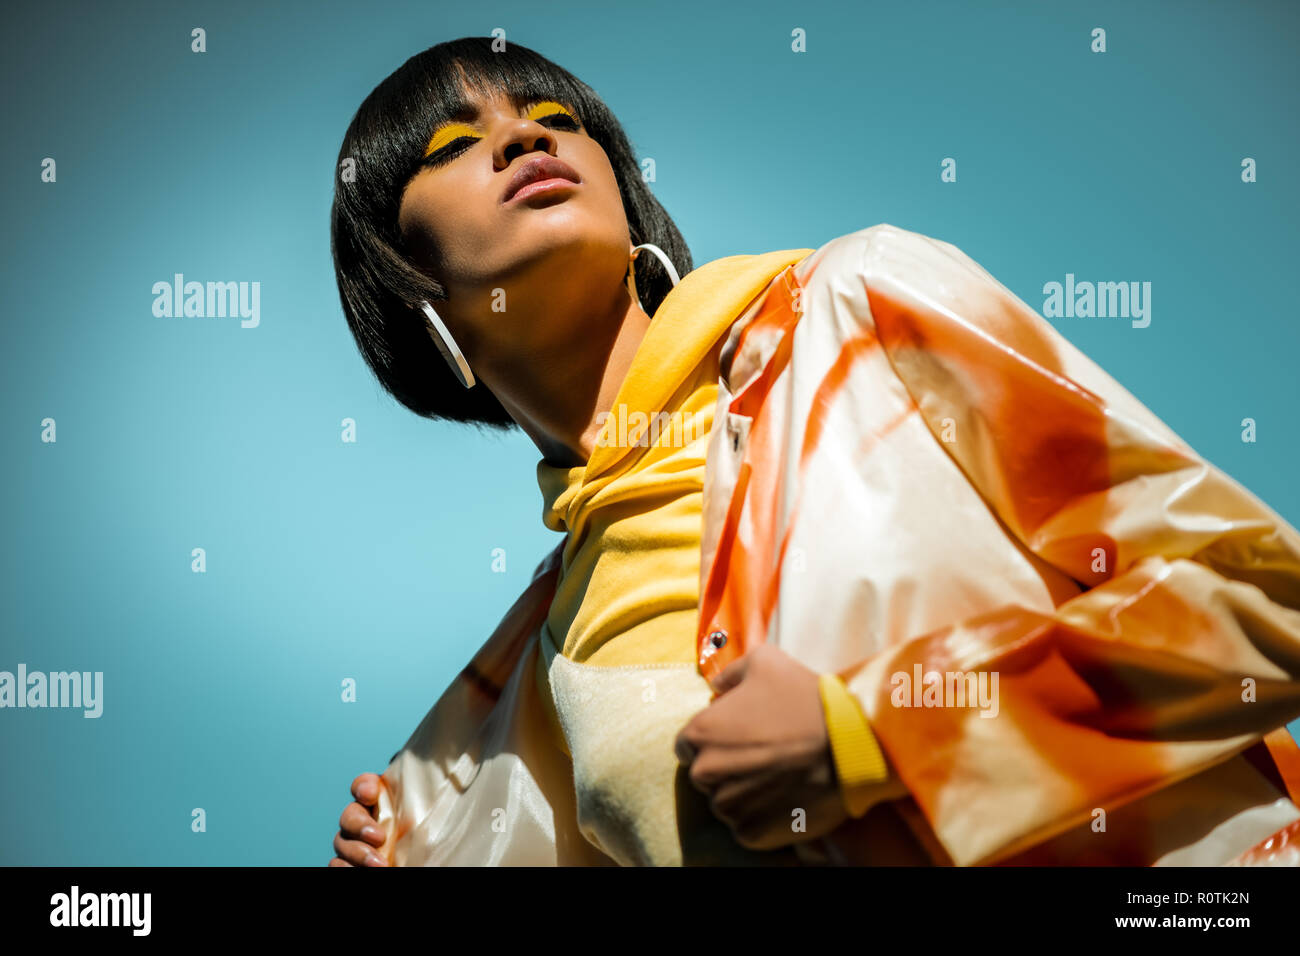 Unusual short-haired woman wearing bright orange poncho - Stock Image